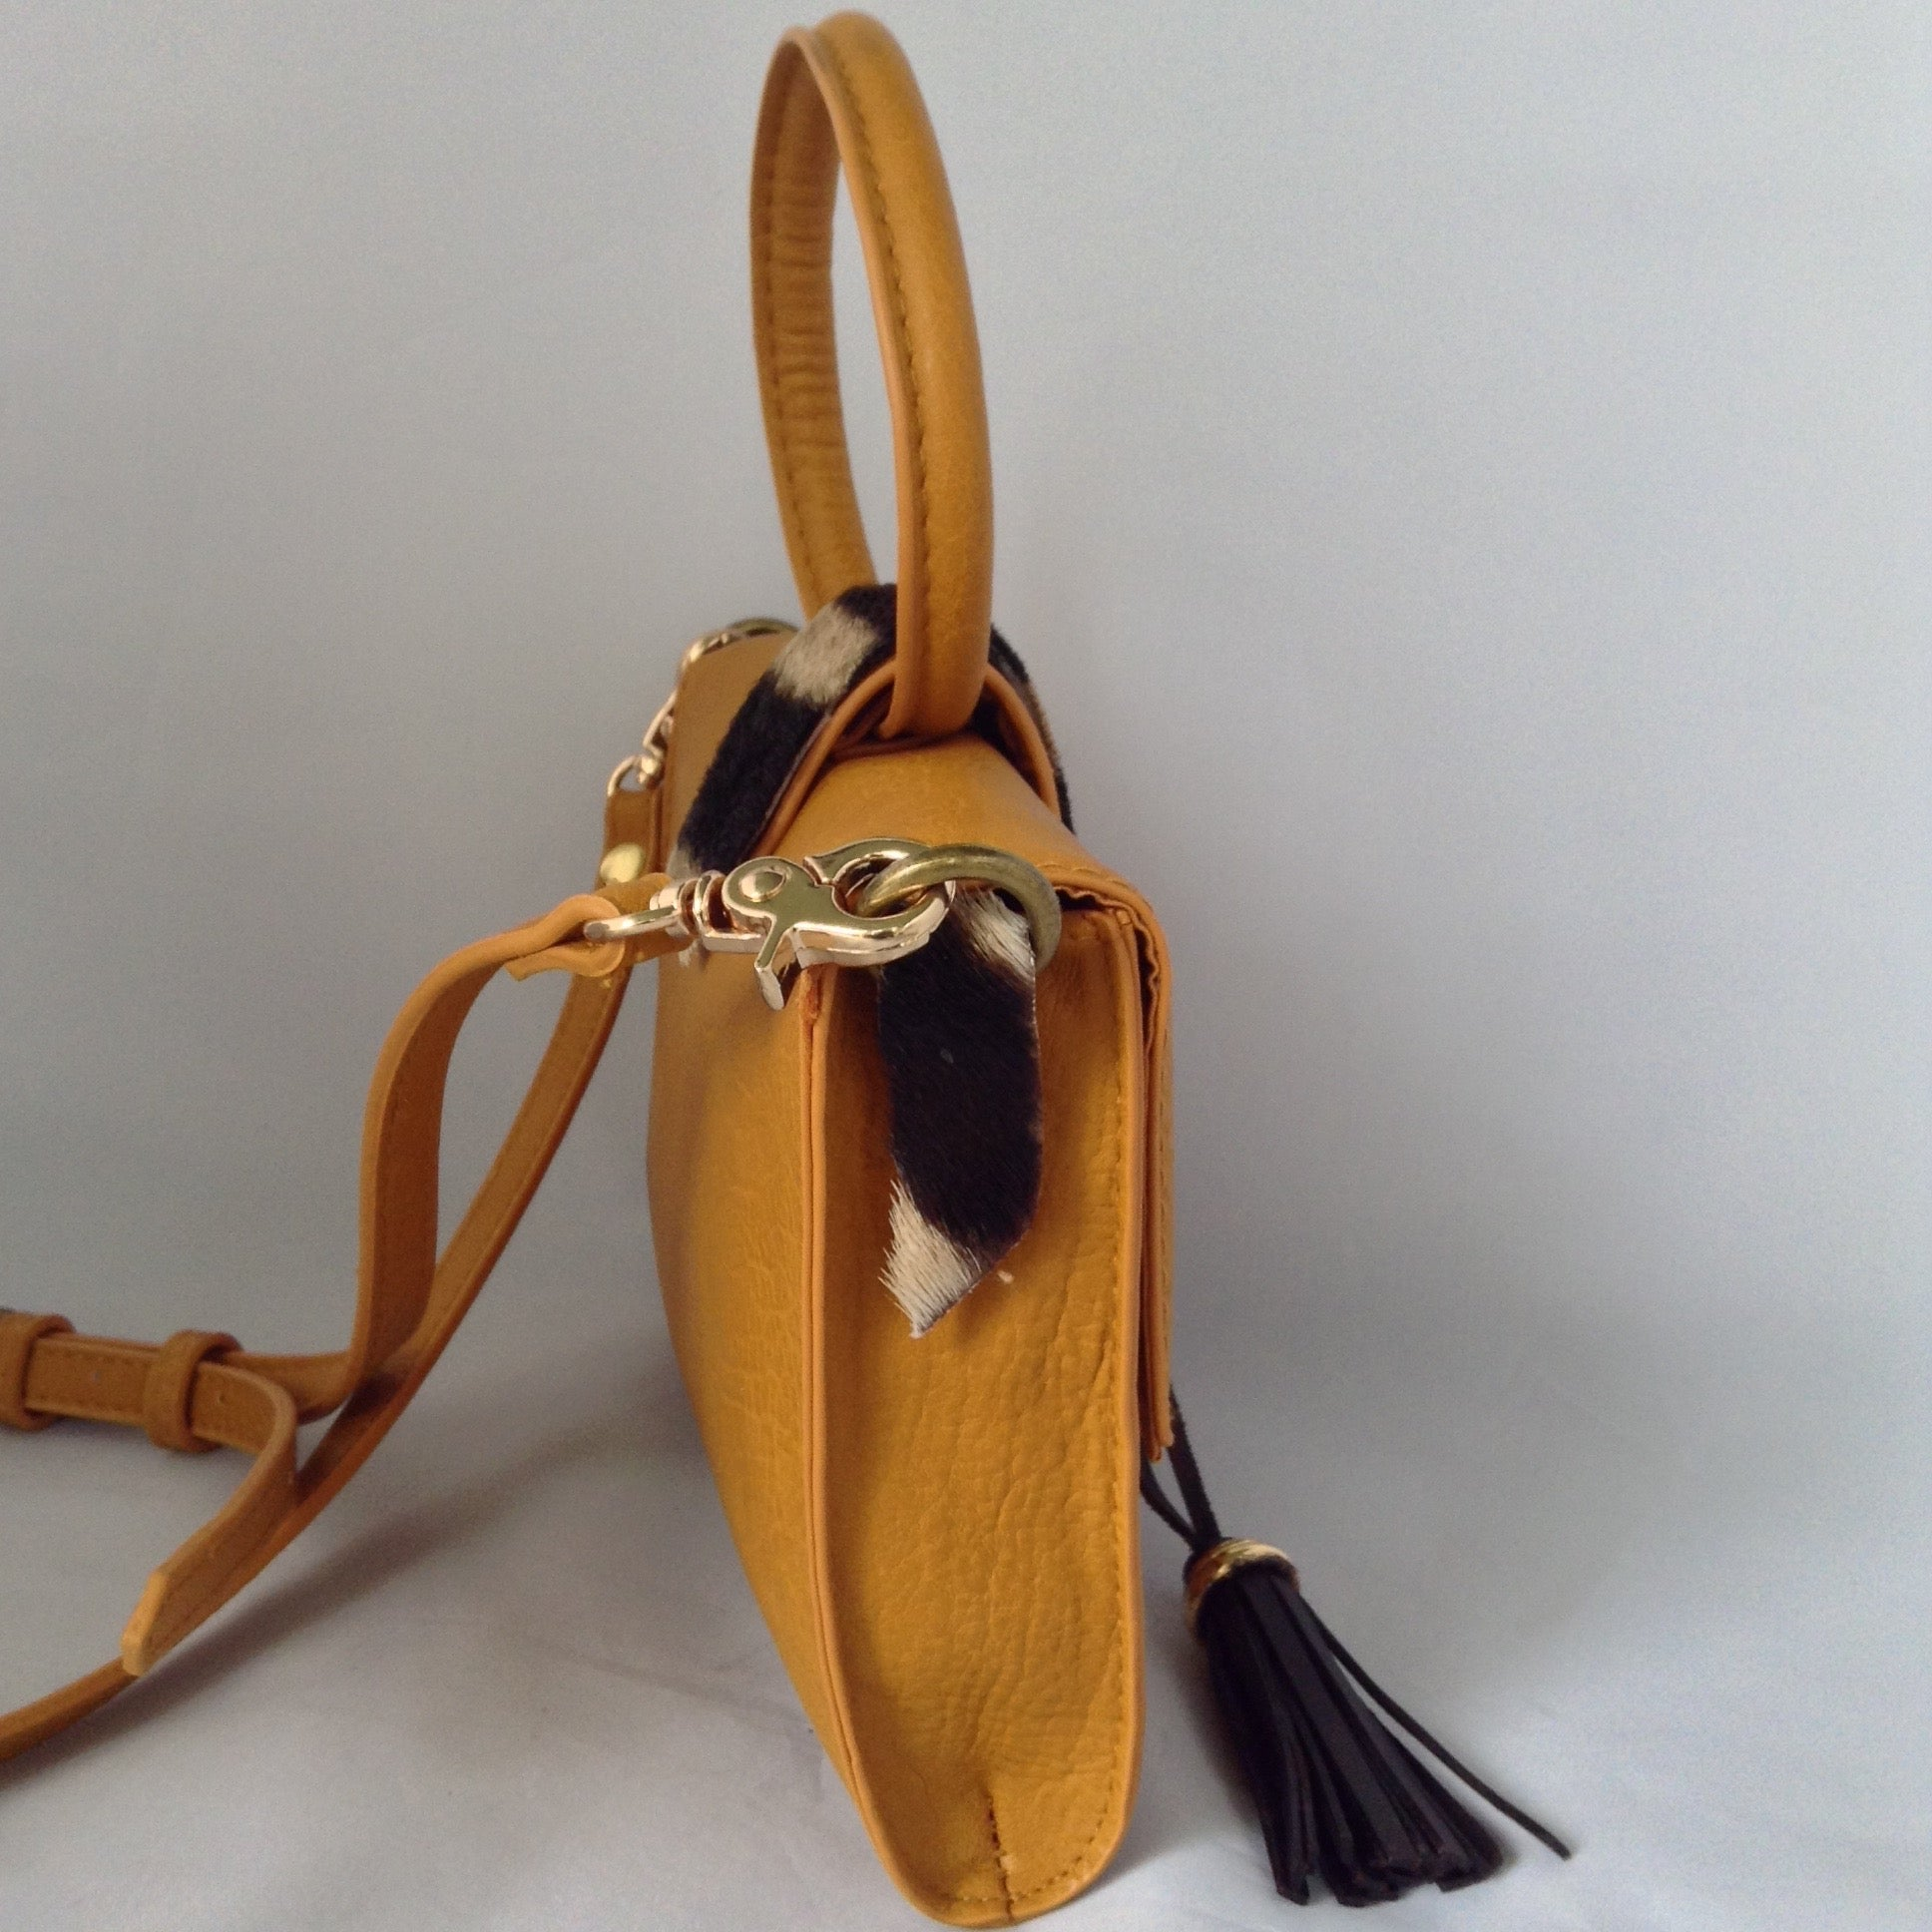 "Charming ""O"" handle in vibrant mustard with accents of real zebra hide make for a darling vintage clutch. Add the detachable leather strap and voila - a cross-body charmer.  Dimensions - Height 6""; Width 8""; Depth 2"""